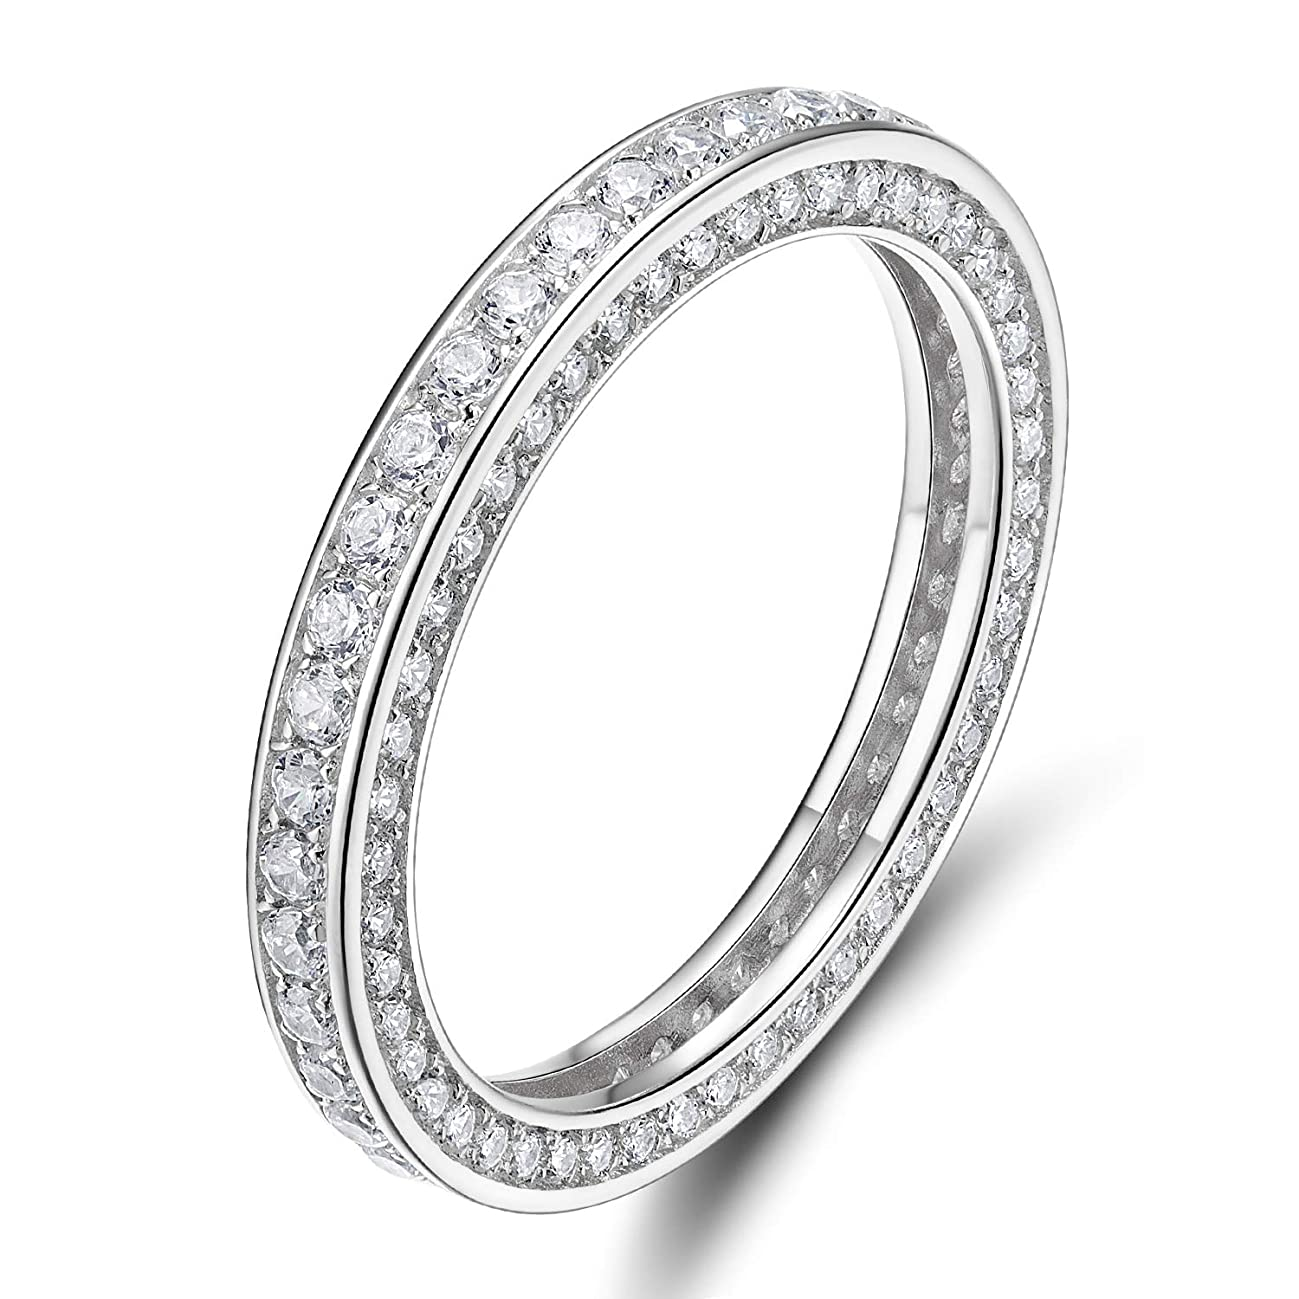 SOMEN TUNGSTEN 925 Sterling Silver Rings Cubic Zirconia Eternity Engagement Wedding Band Width 3MM Size 4-10